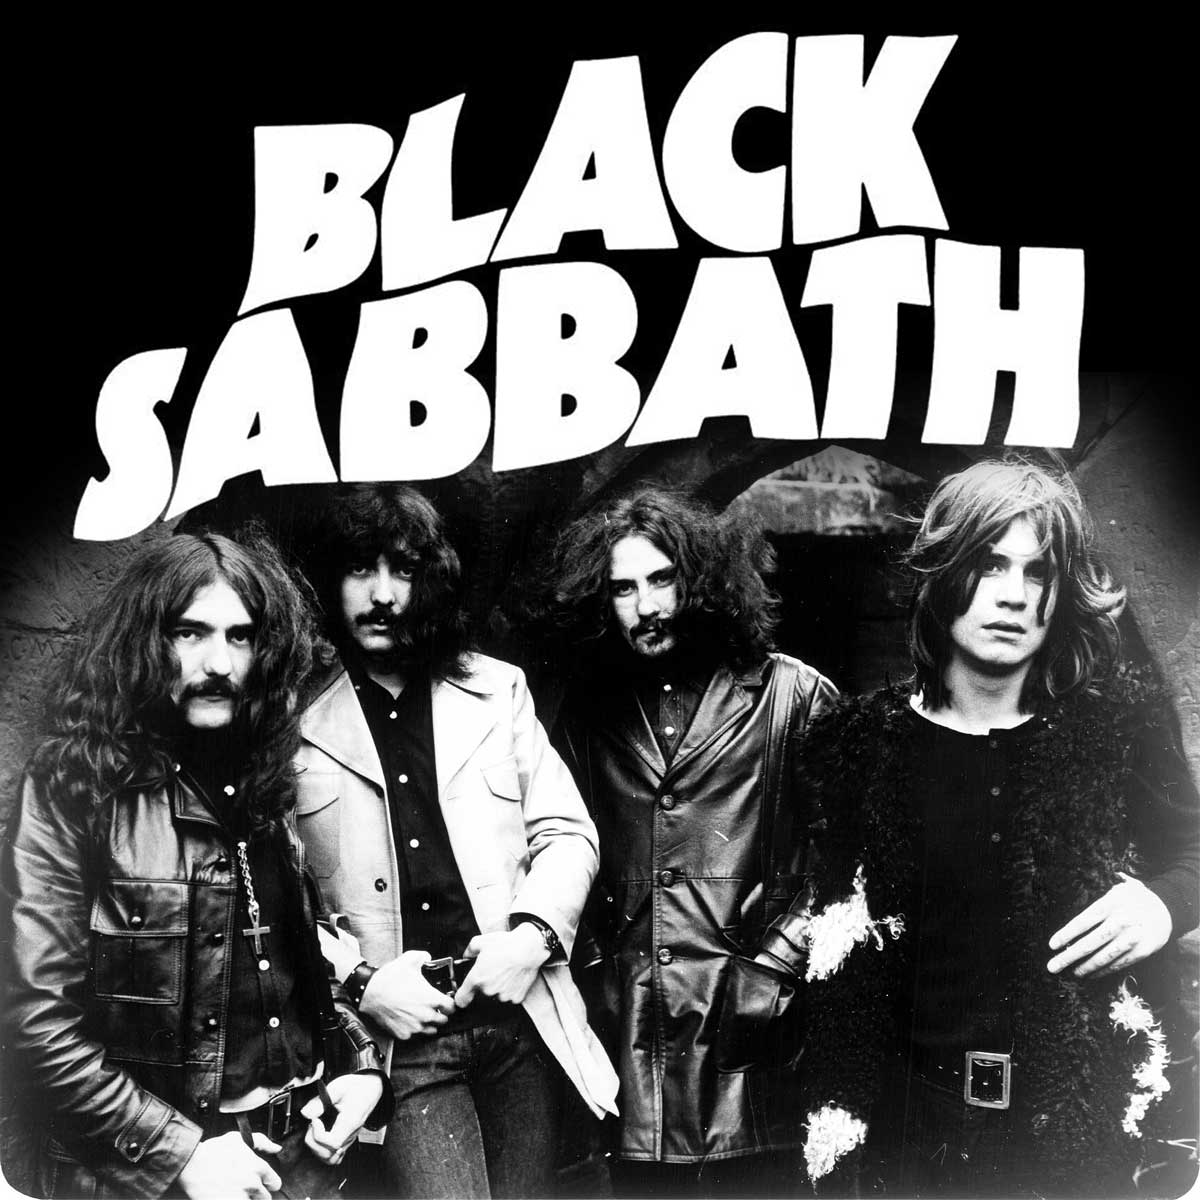 Rock Bands: SudupeReviewer: Top 15 Of Metal Or Rock Bands We Miss The